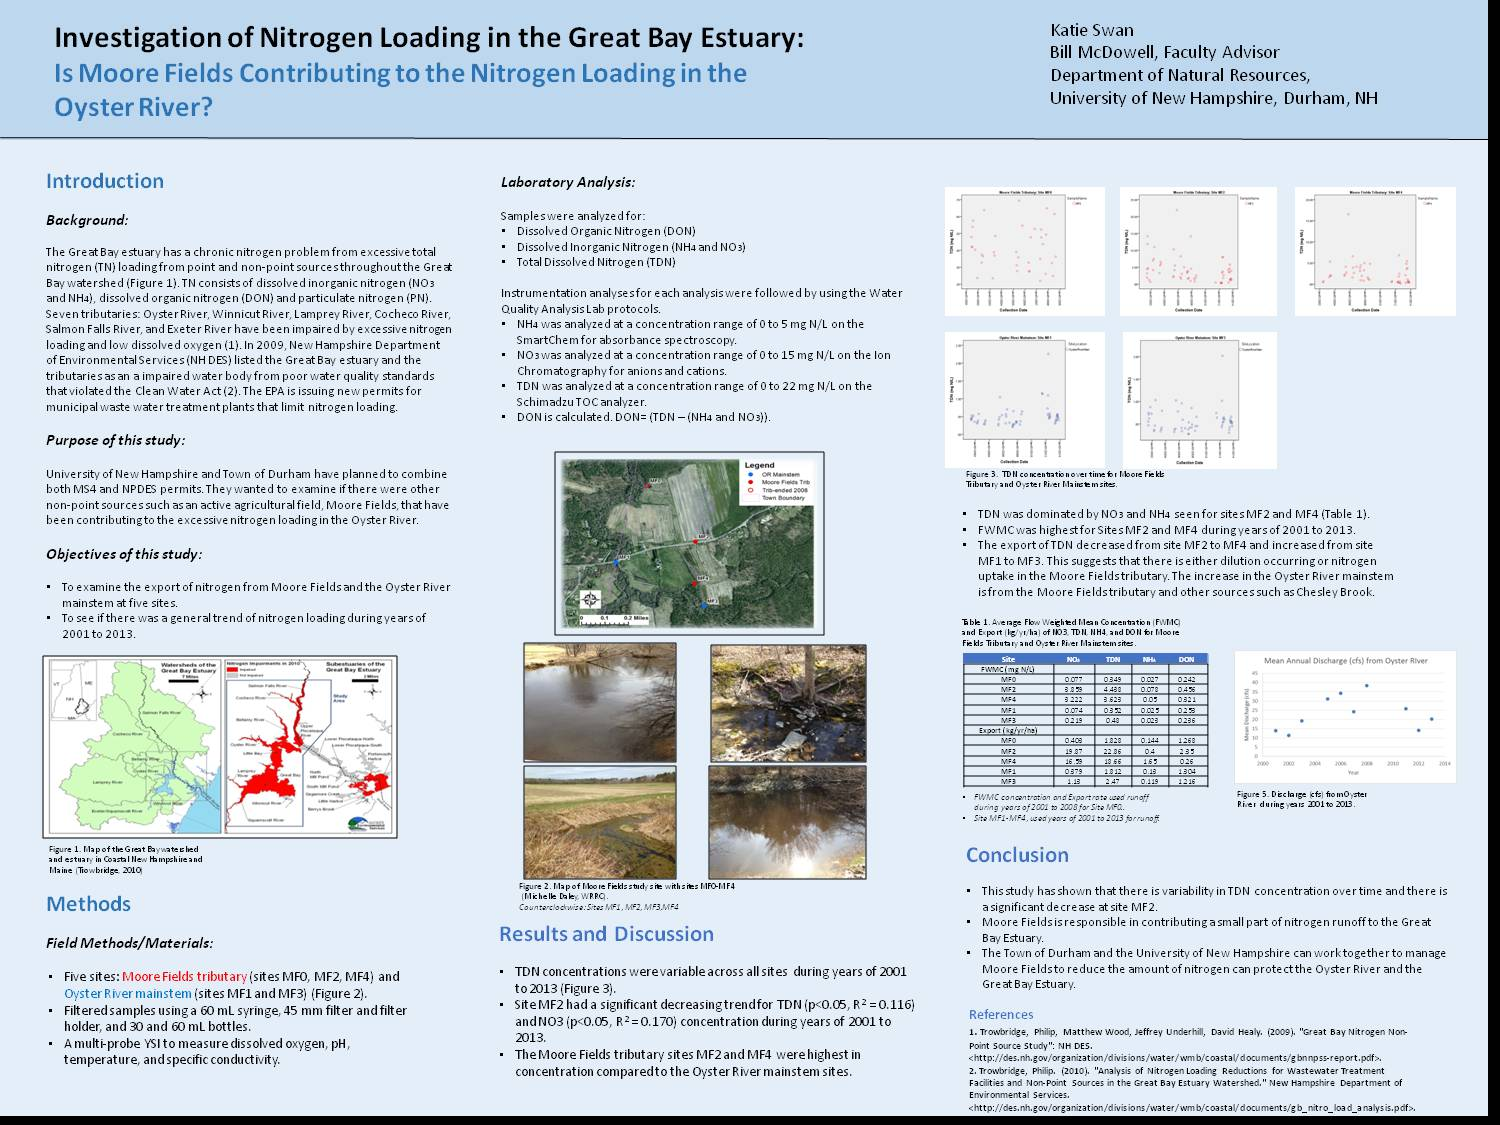 Investigation Of Nitrogen Loading In The Great Bay Estuary: Is Moore Fields Contributing To The Nitrogen Loading In The Oyster River? by knm23